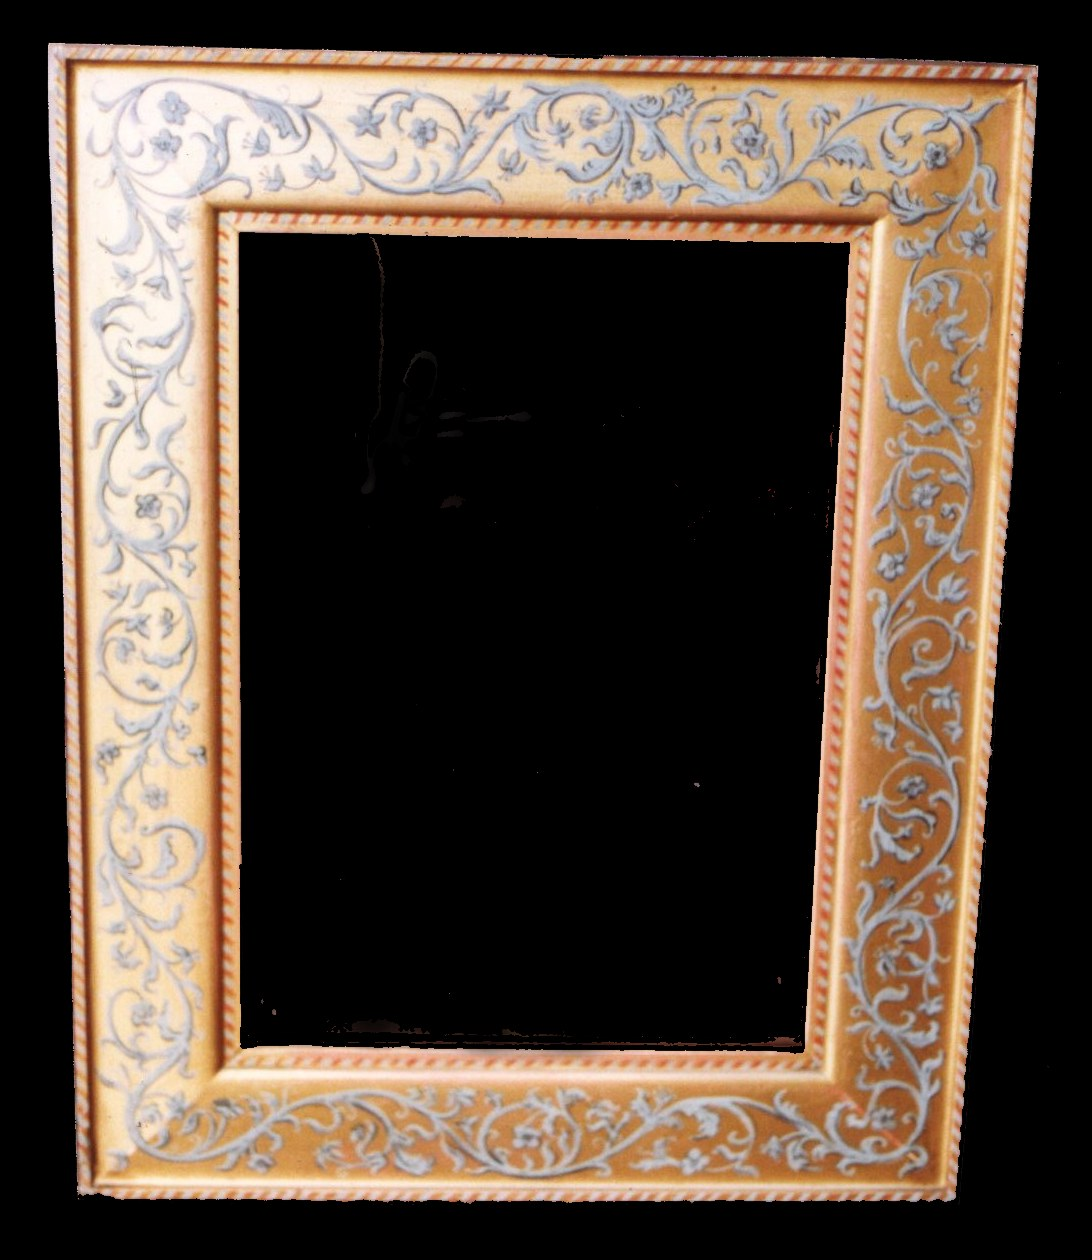 Gold rectangular frame with painted grey scrolls.